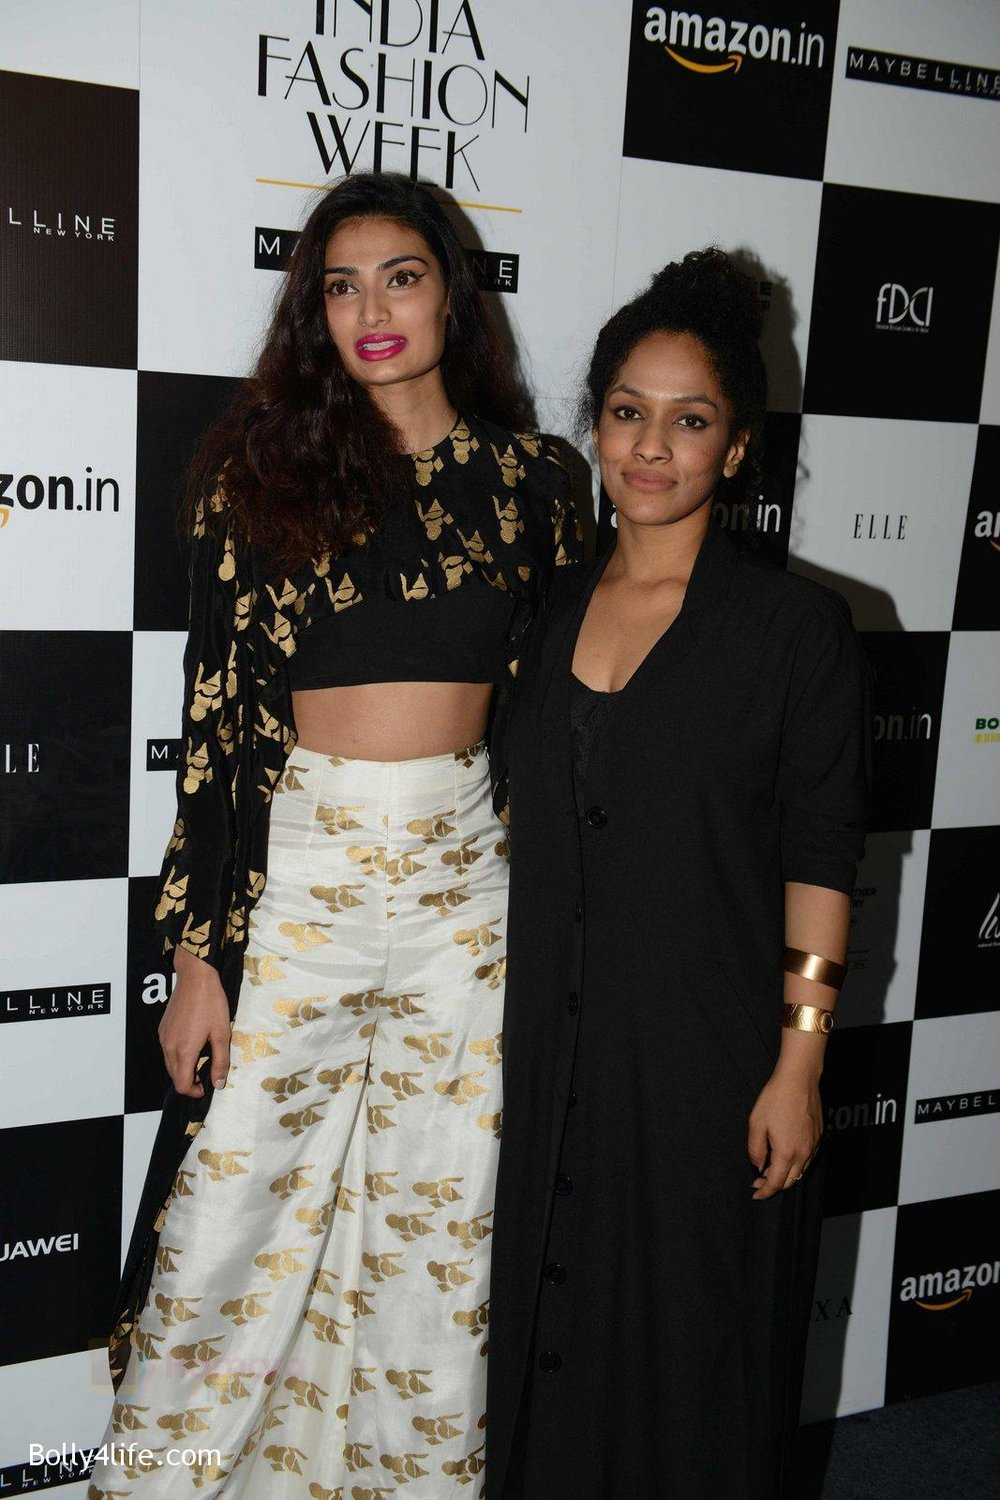 Athiya-Shetty-walks-for-Masaba-at-Amazon-India-Fashion-Week-on-15th-Oct-2016-1.jpg